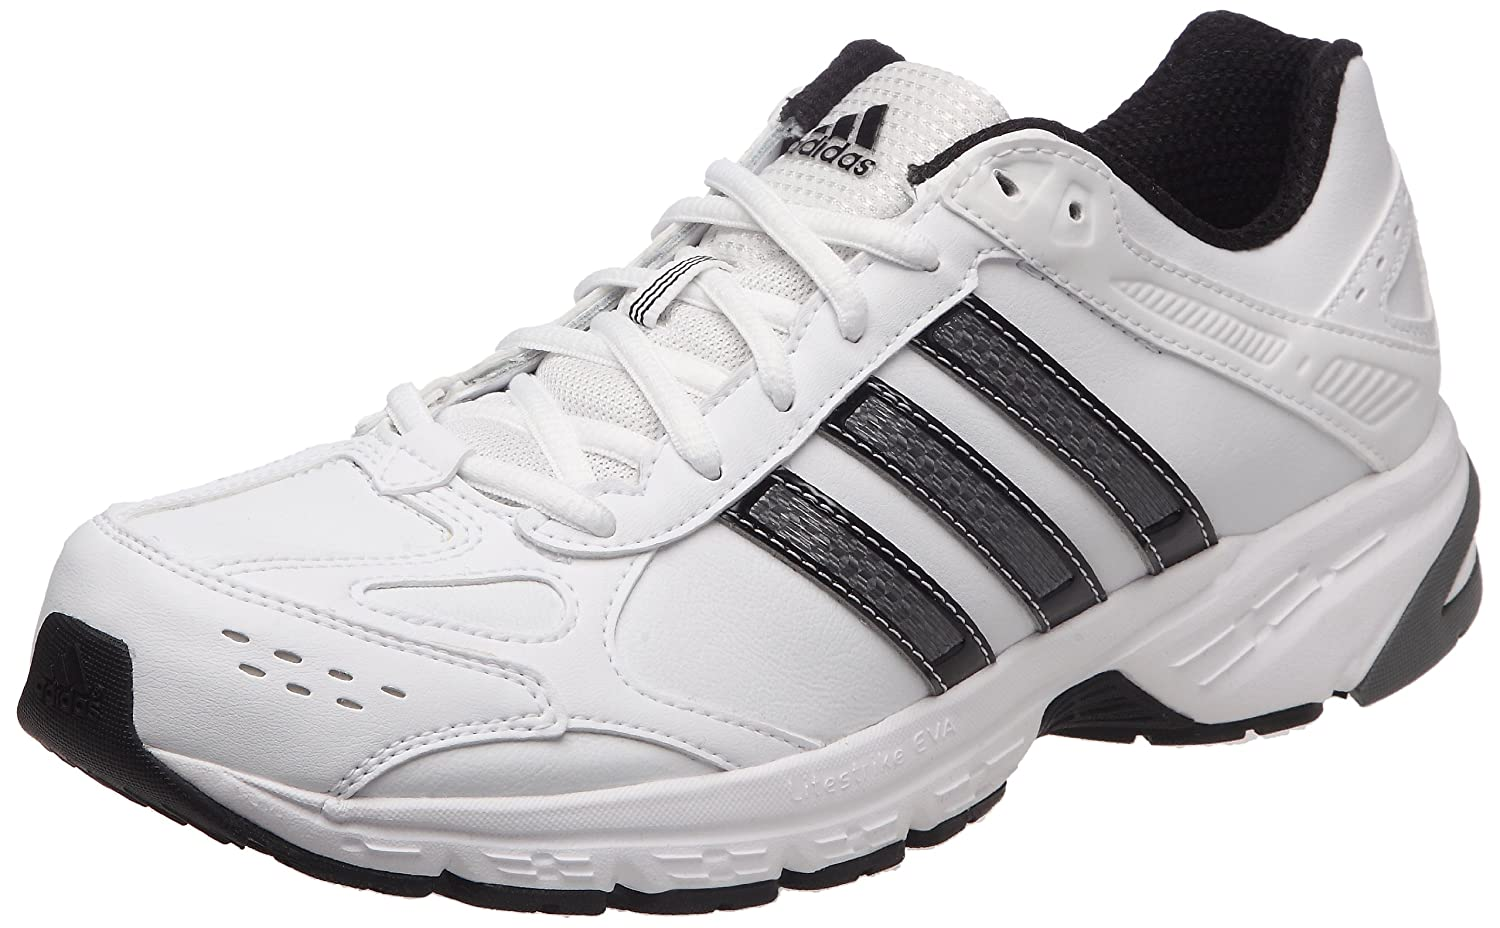 b5ffdb8e51e Adidas Duramo 4 Leather M Laufschuhe running white-black-neo iron ...